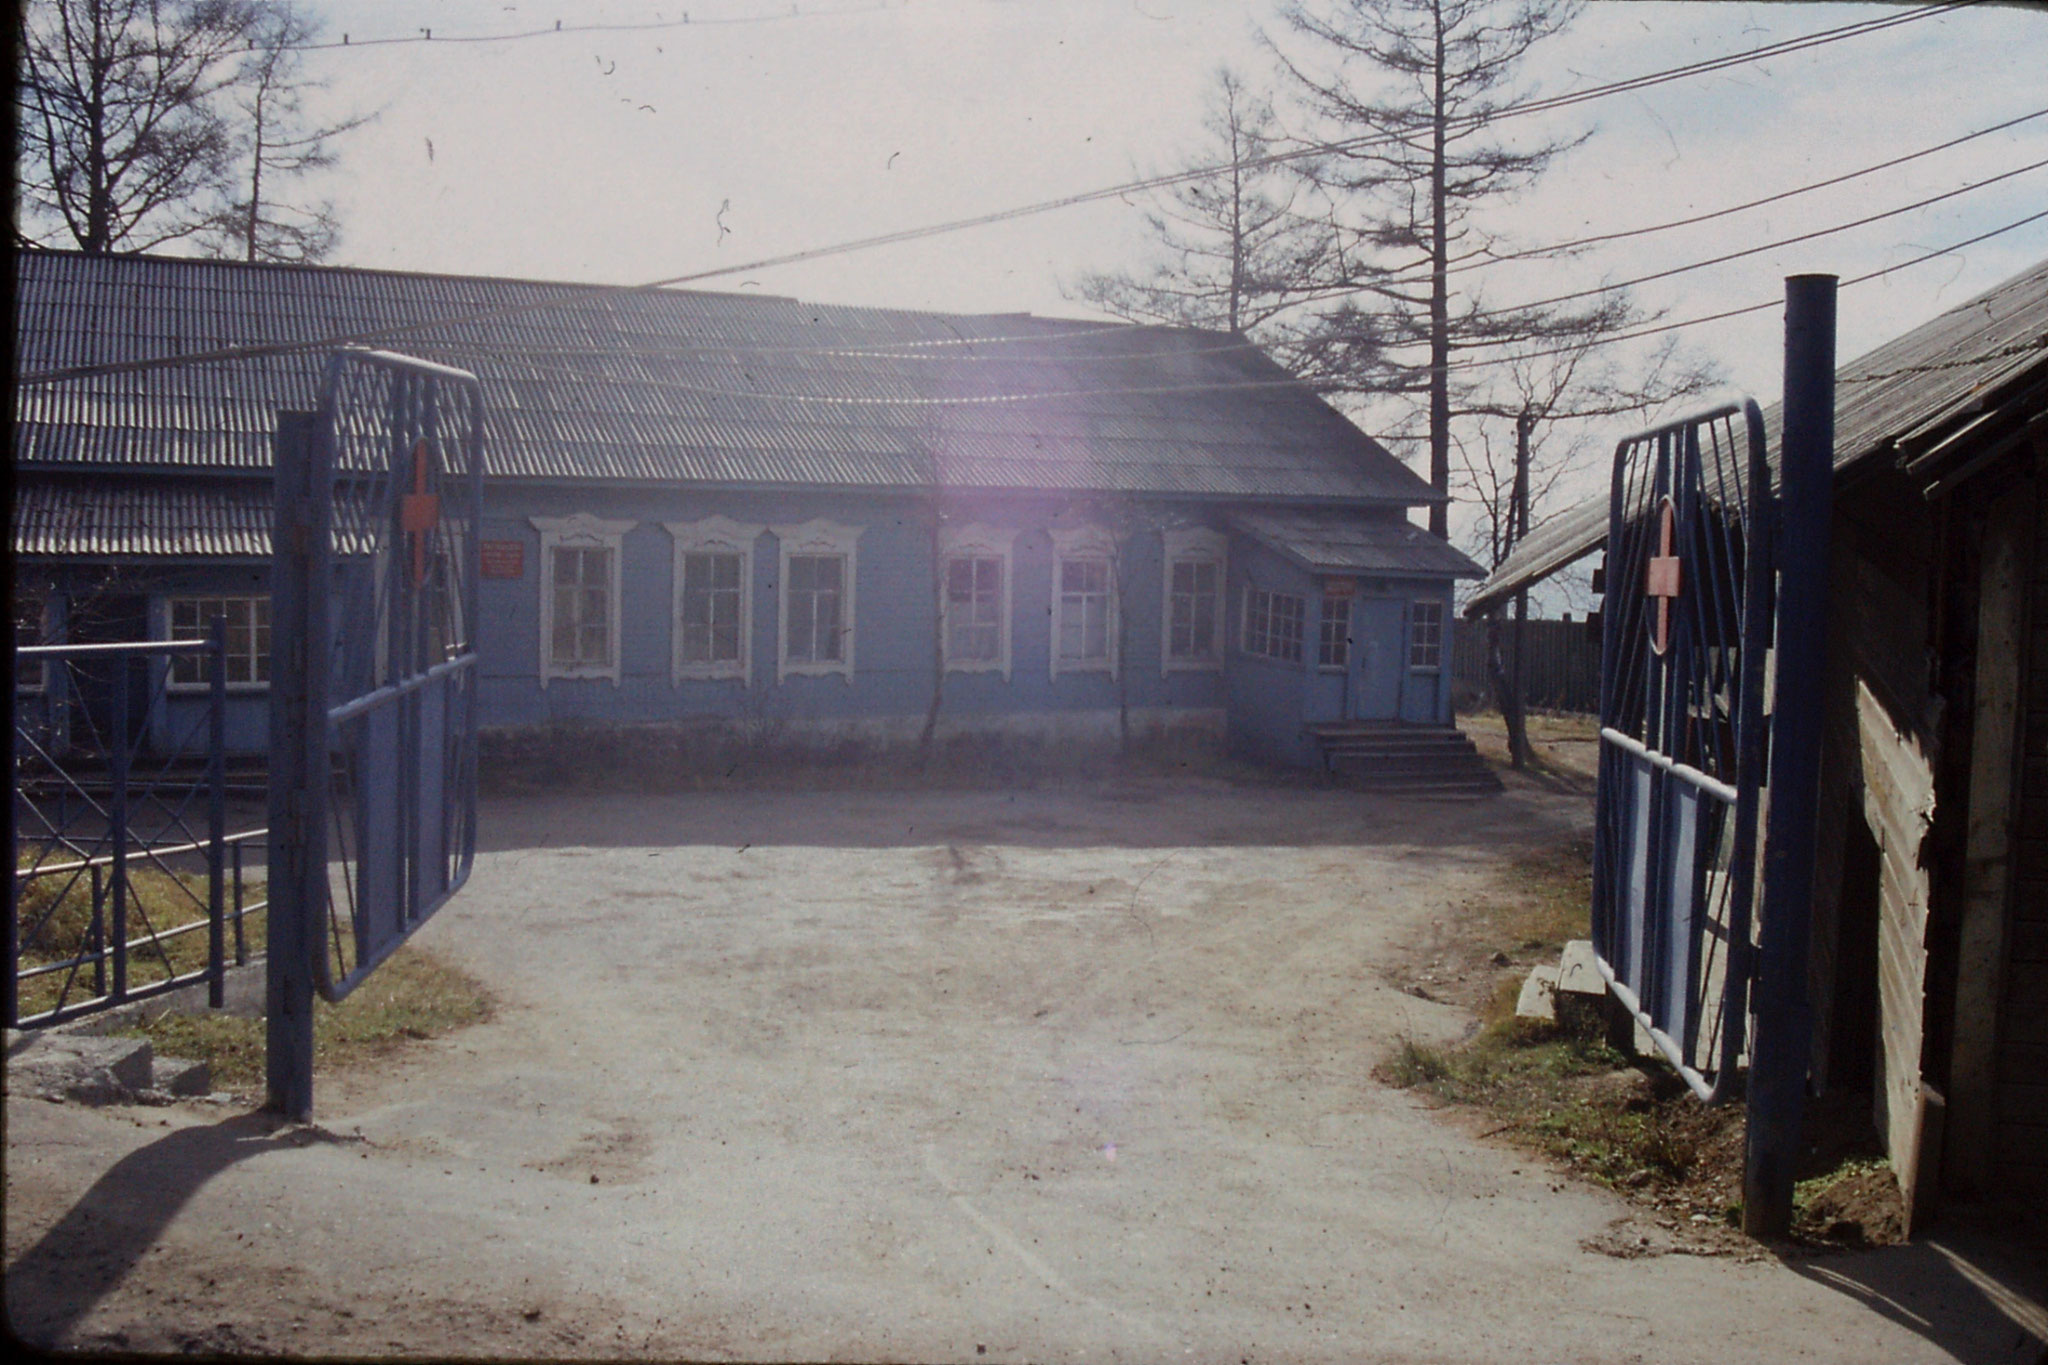 23/10/1988: 23: Lake Baikal Listvyanka hospital